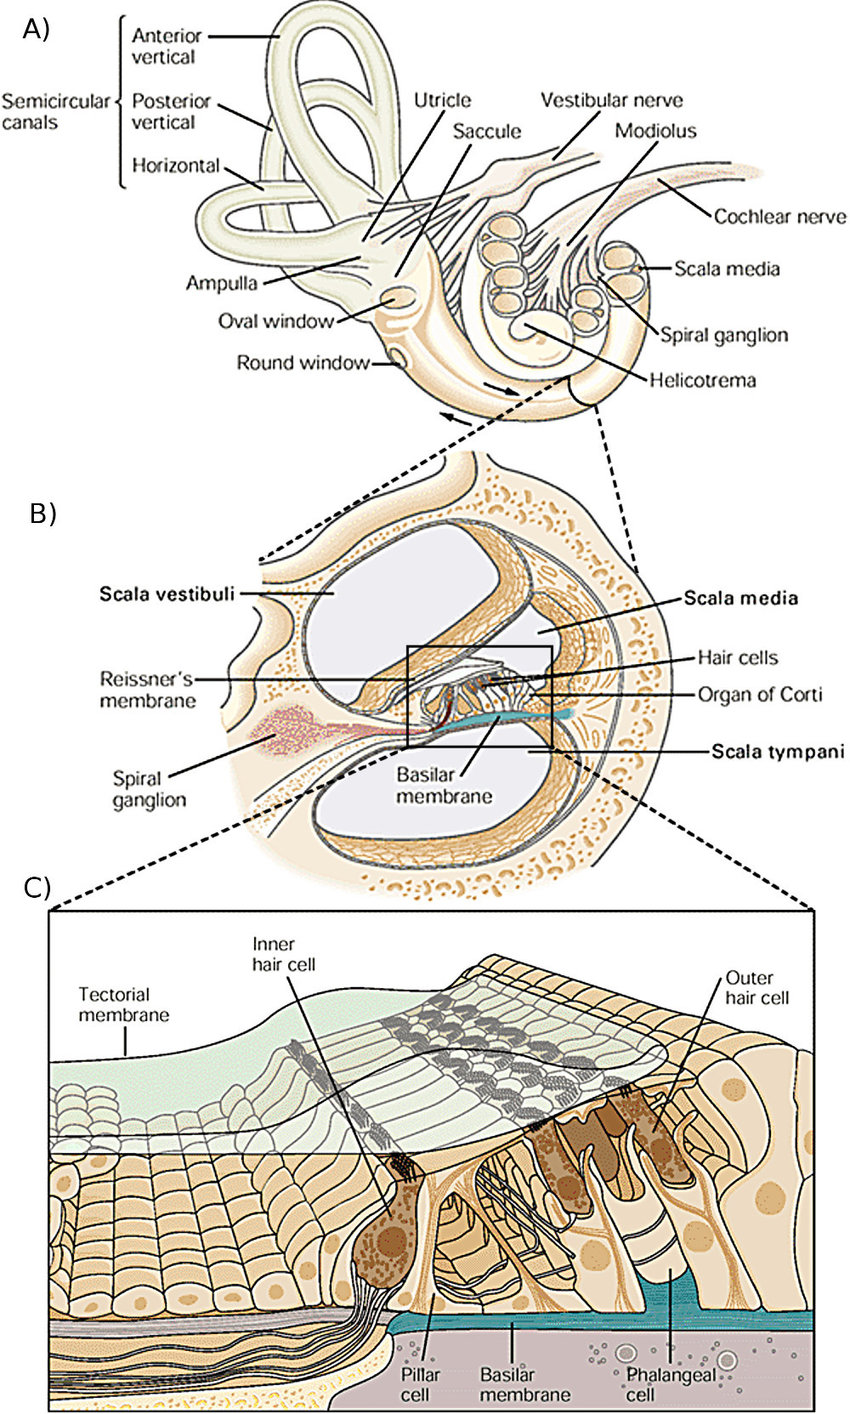 Anatomy-of-the-cochlea-A-The-overall-structure-of-the-inner-including-vestibular.jpg